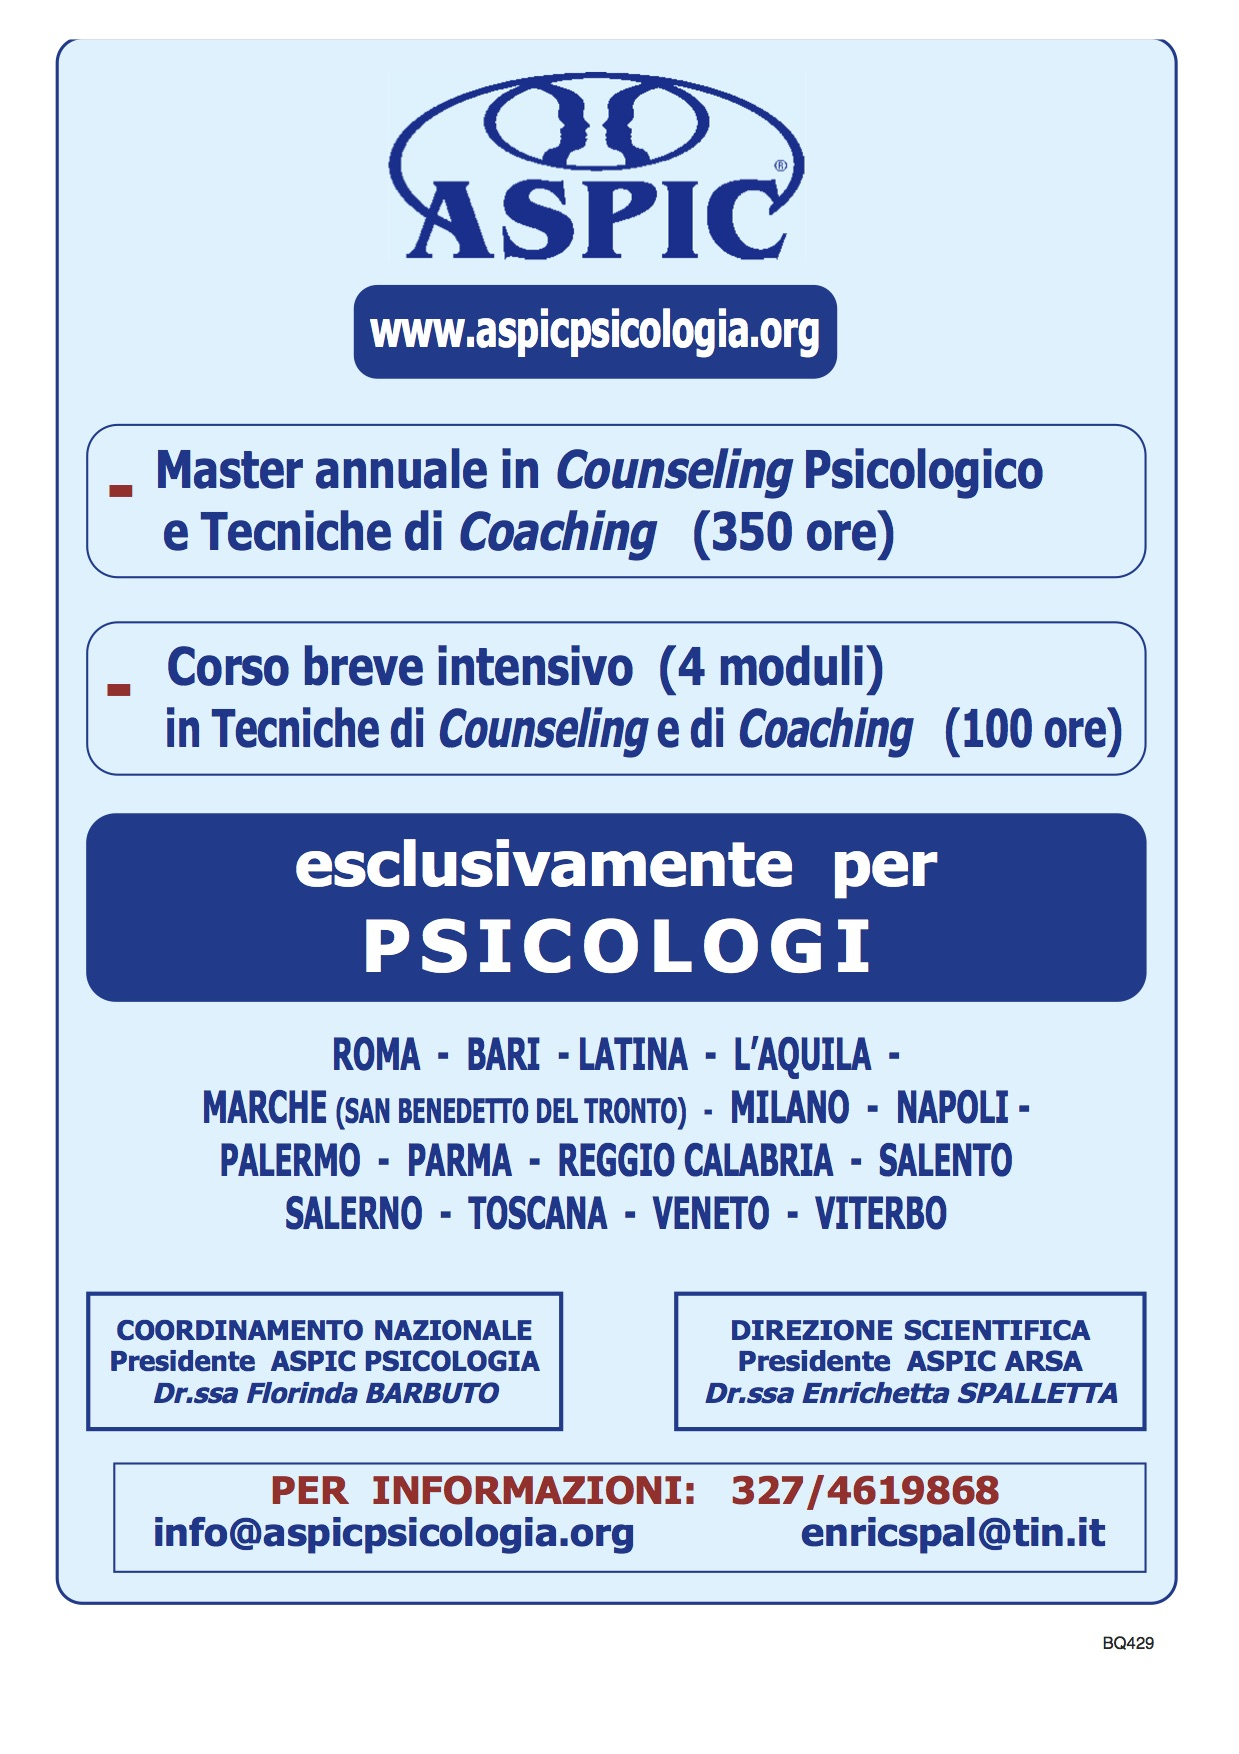 counseling_coaching_psicologi_aspic 2020